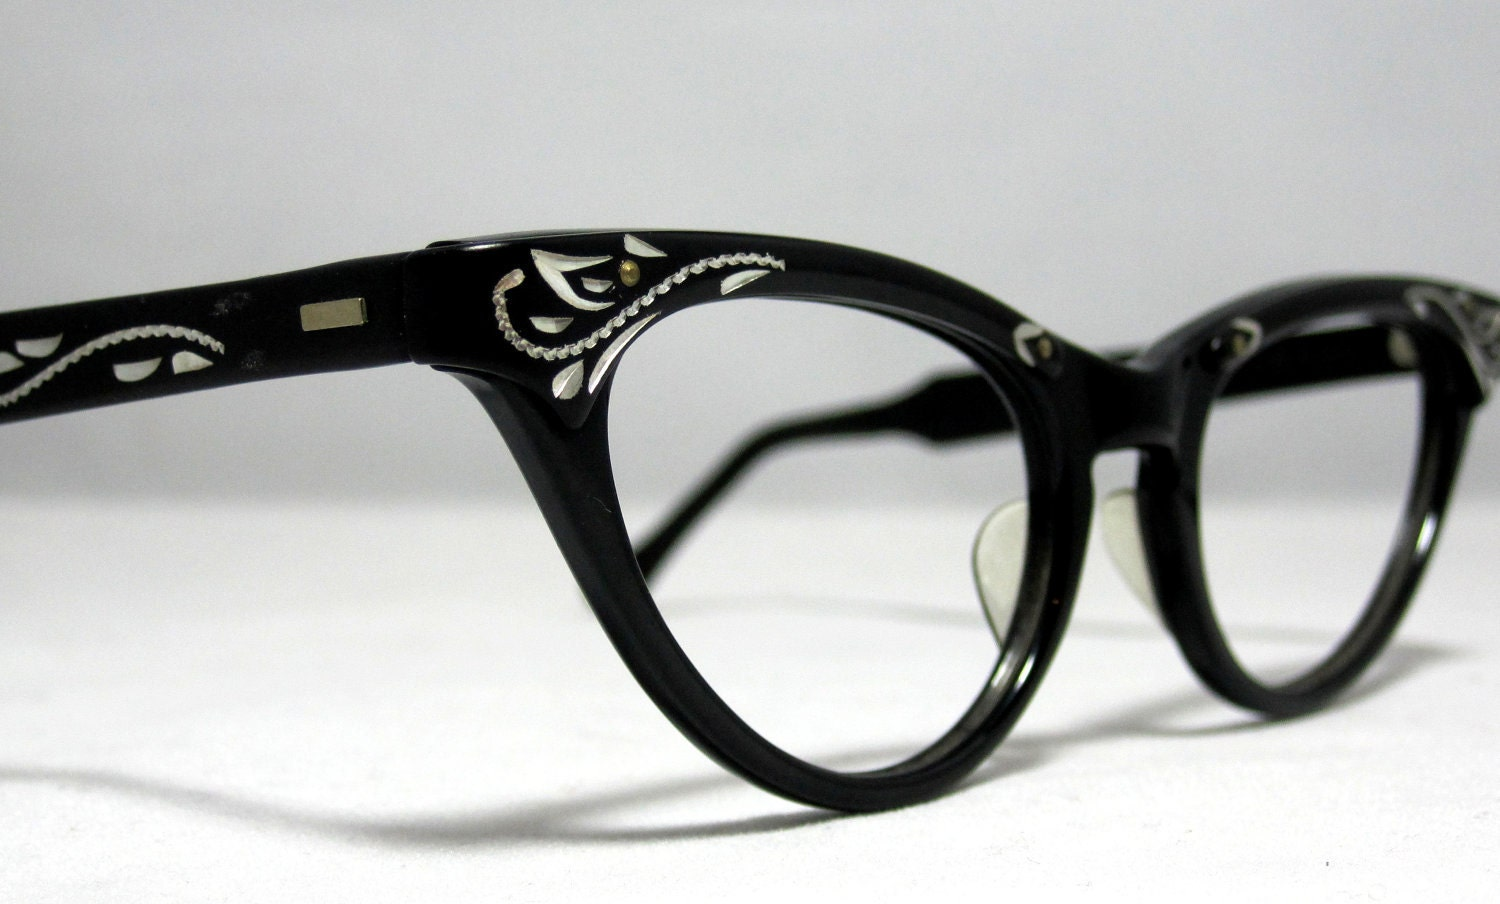 Vintage Glasses Frames Cat Eye : Vintage Cat Eye Glasses Frames. Black and Silver with Etched